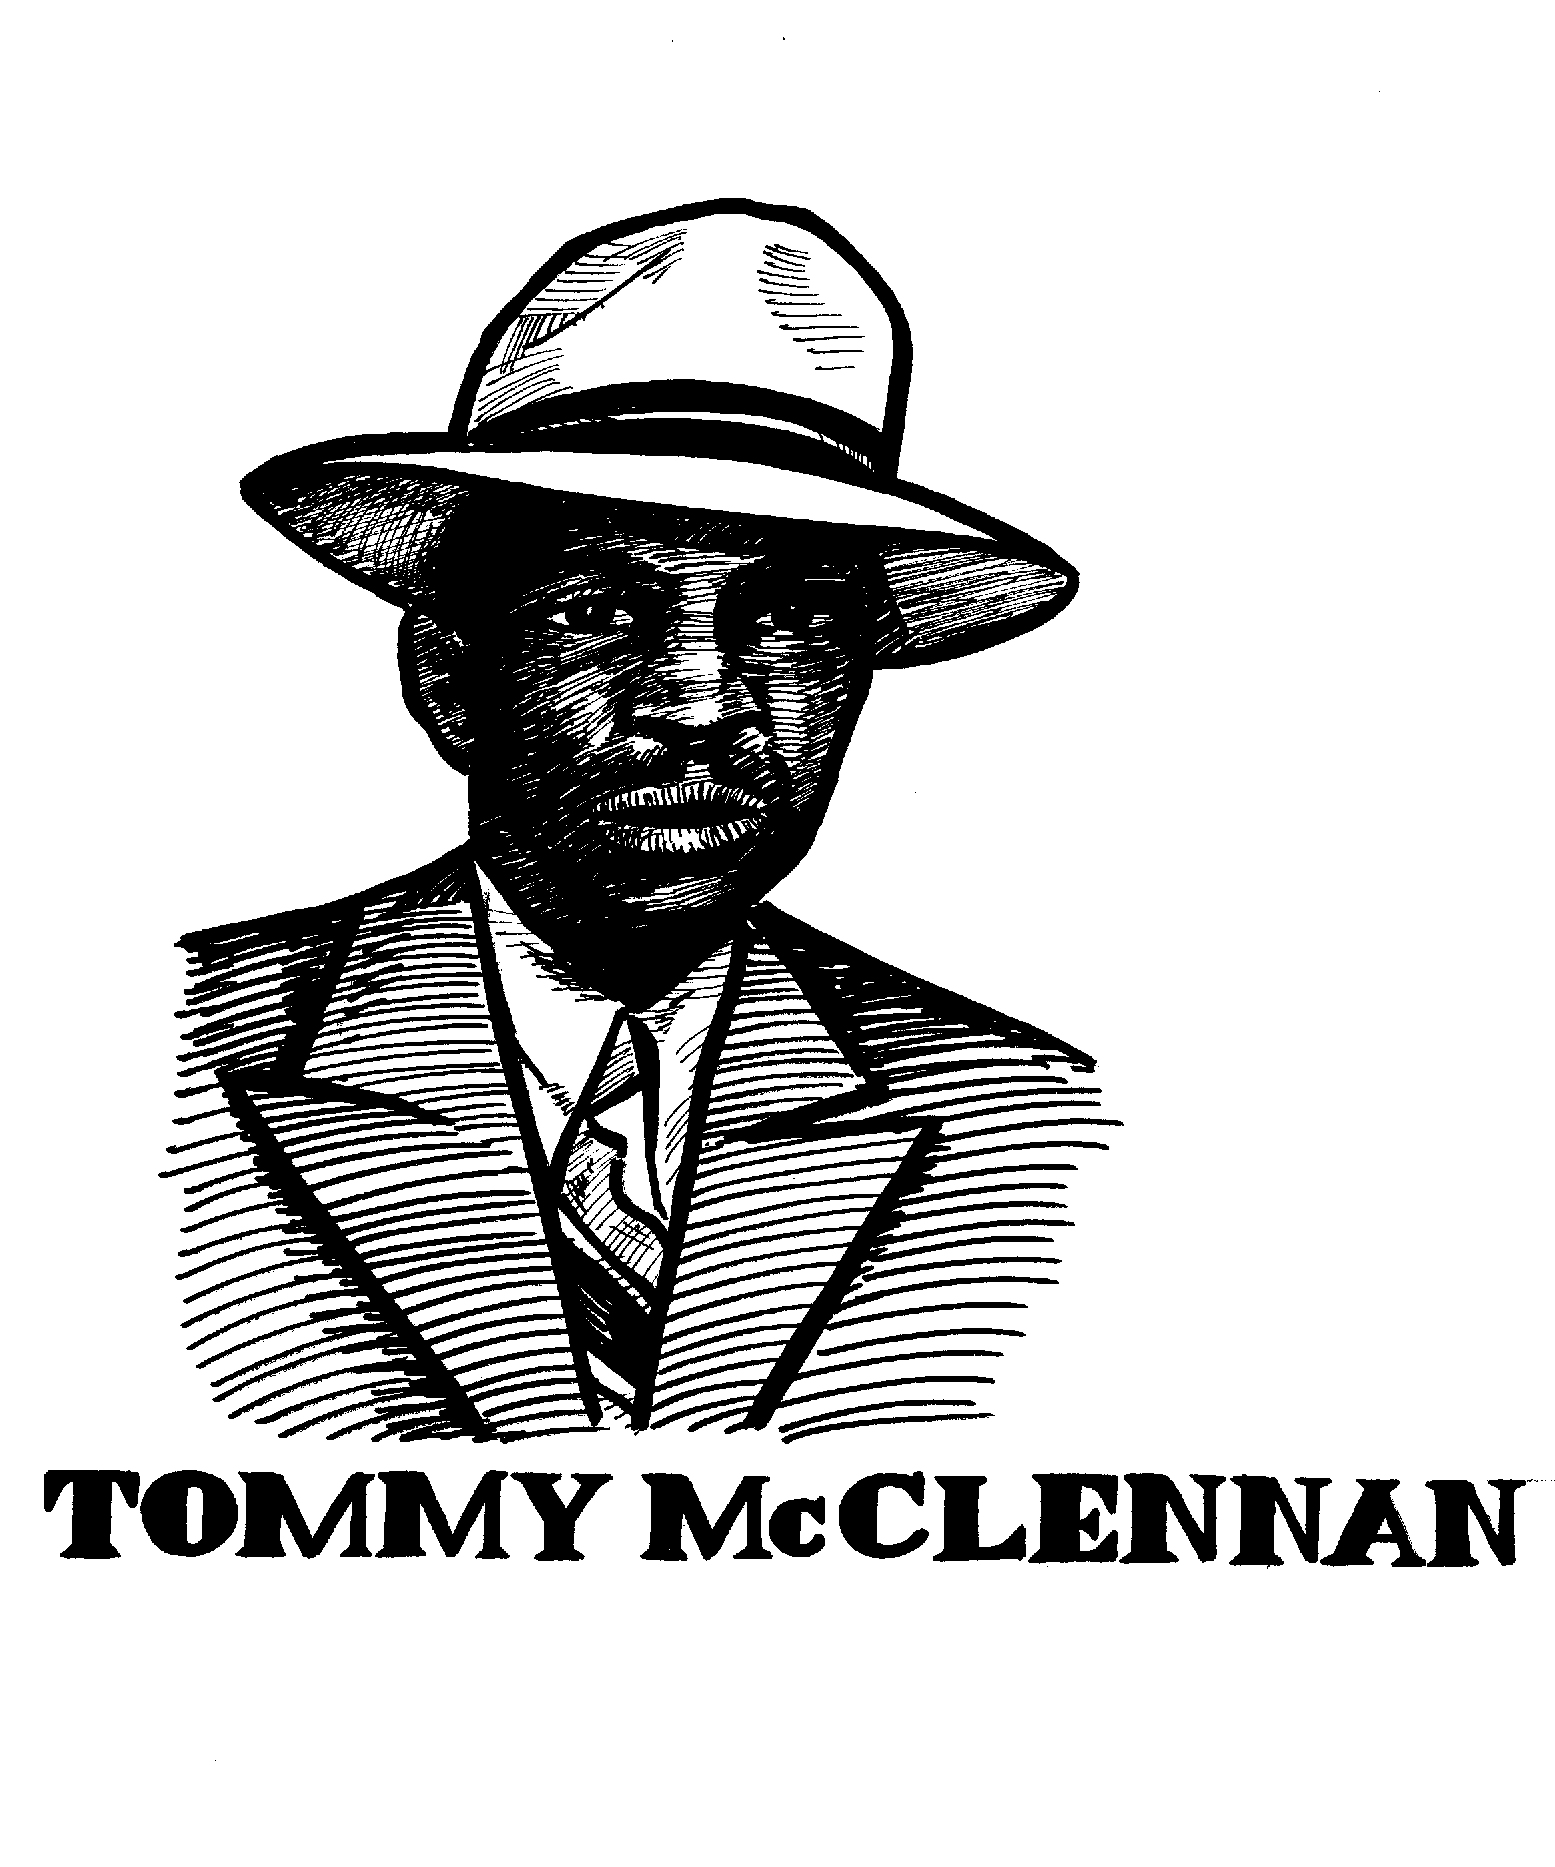 $250, Tommy McClennan and logo used in Secret History of Chicago Music